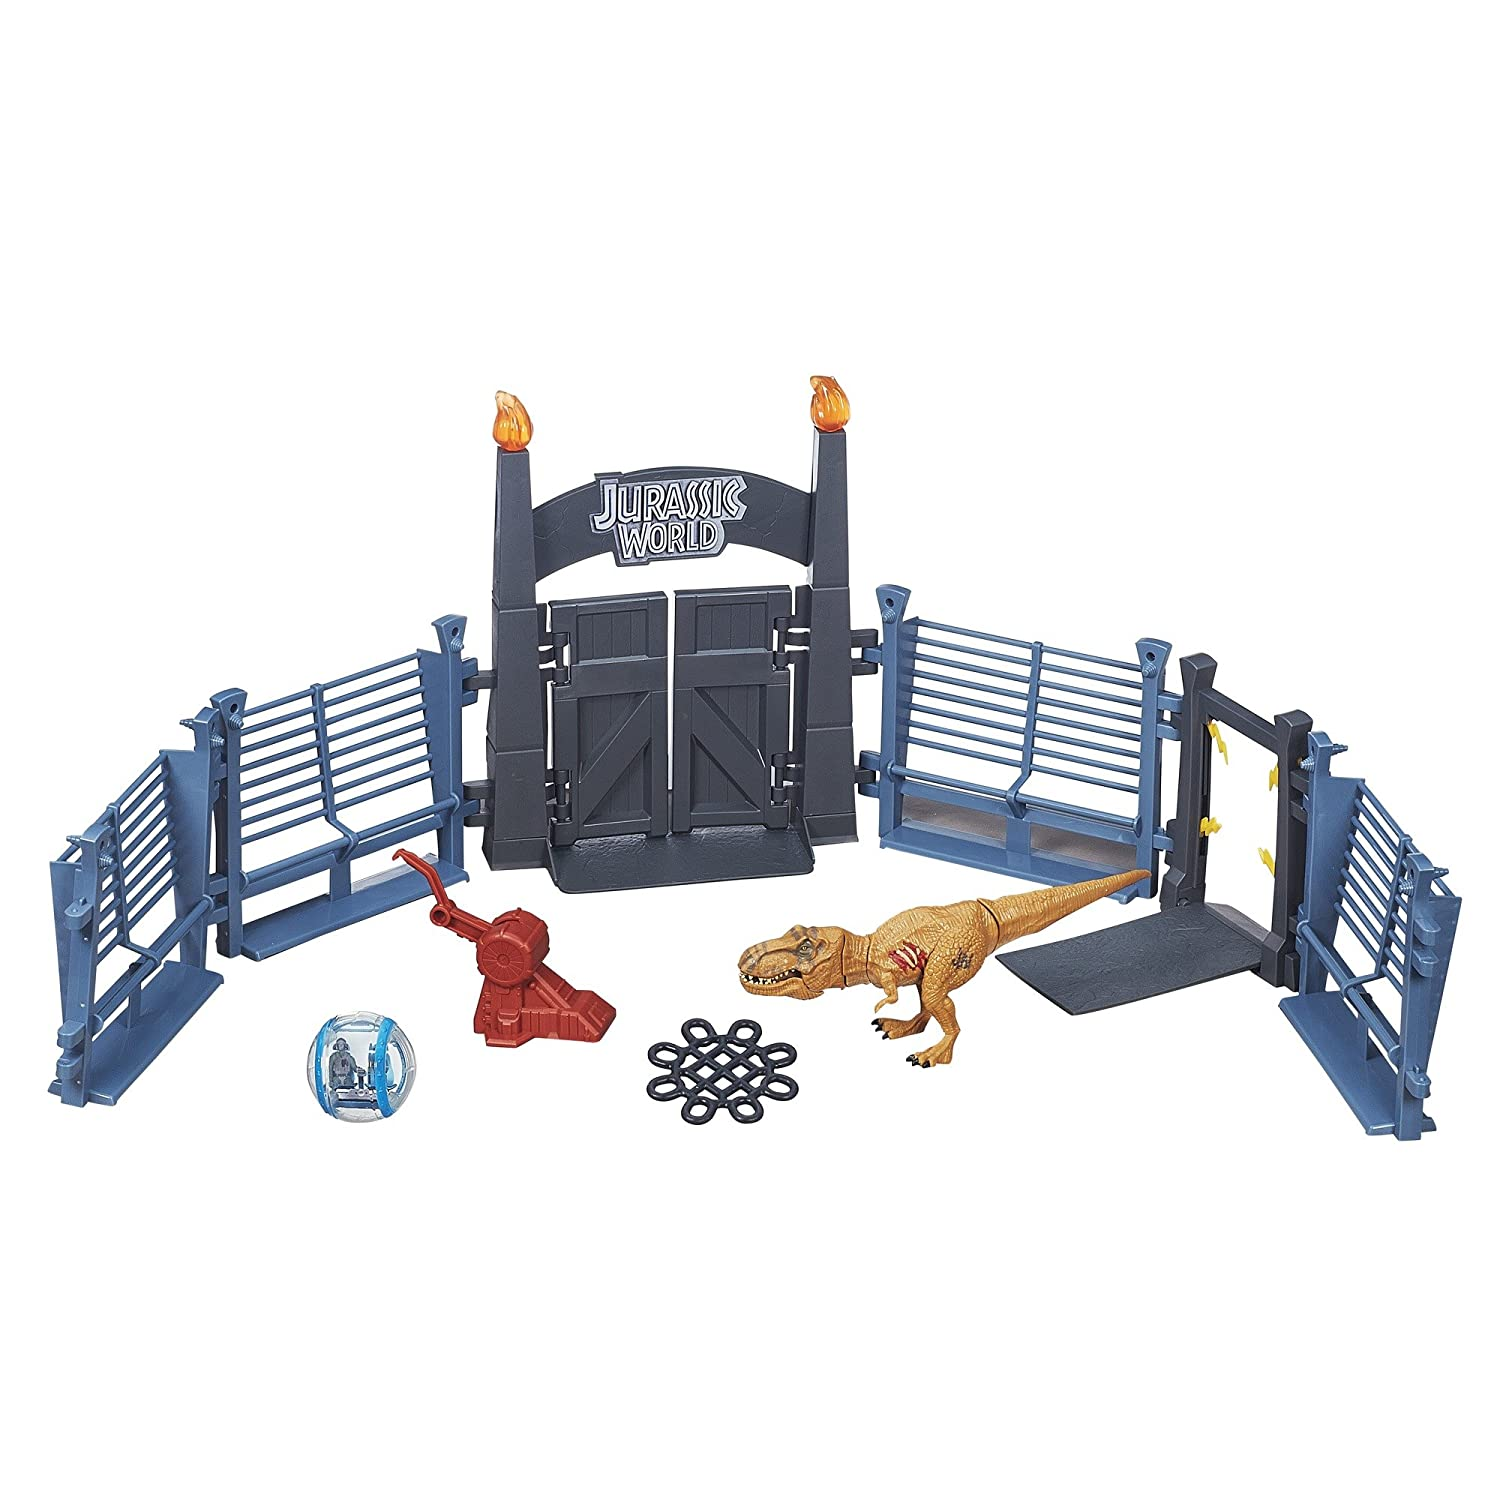 Jurassic Park Playset Action Figure